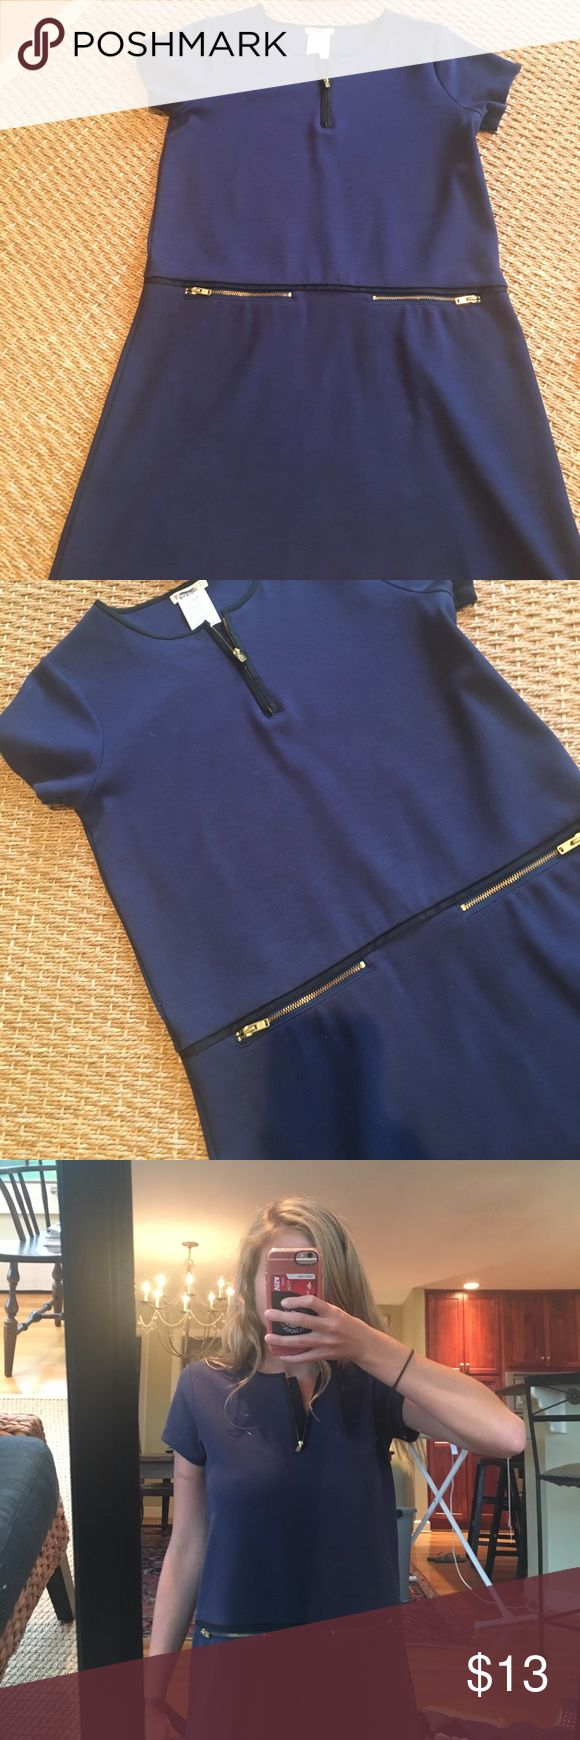 J Crew Dress This dress is navy with gold zippers and leather accents. It is very comfy and nicely made. It sized as a girls 14, but can easily be worn as a women's XS/S. J Crew's kids brand Crewcuts tends to run large. J Crew Dresses